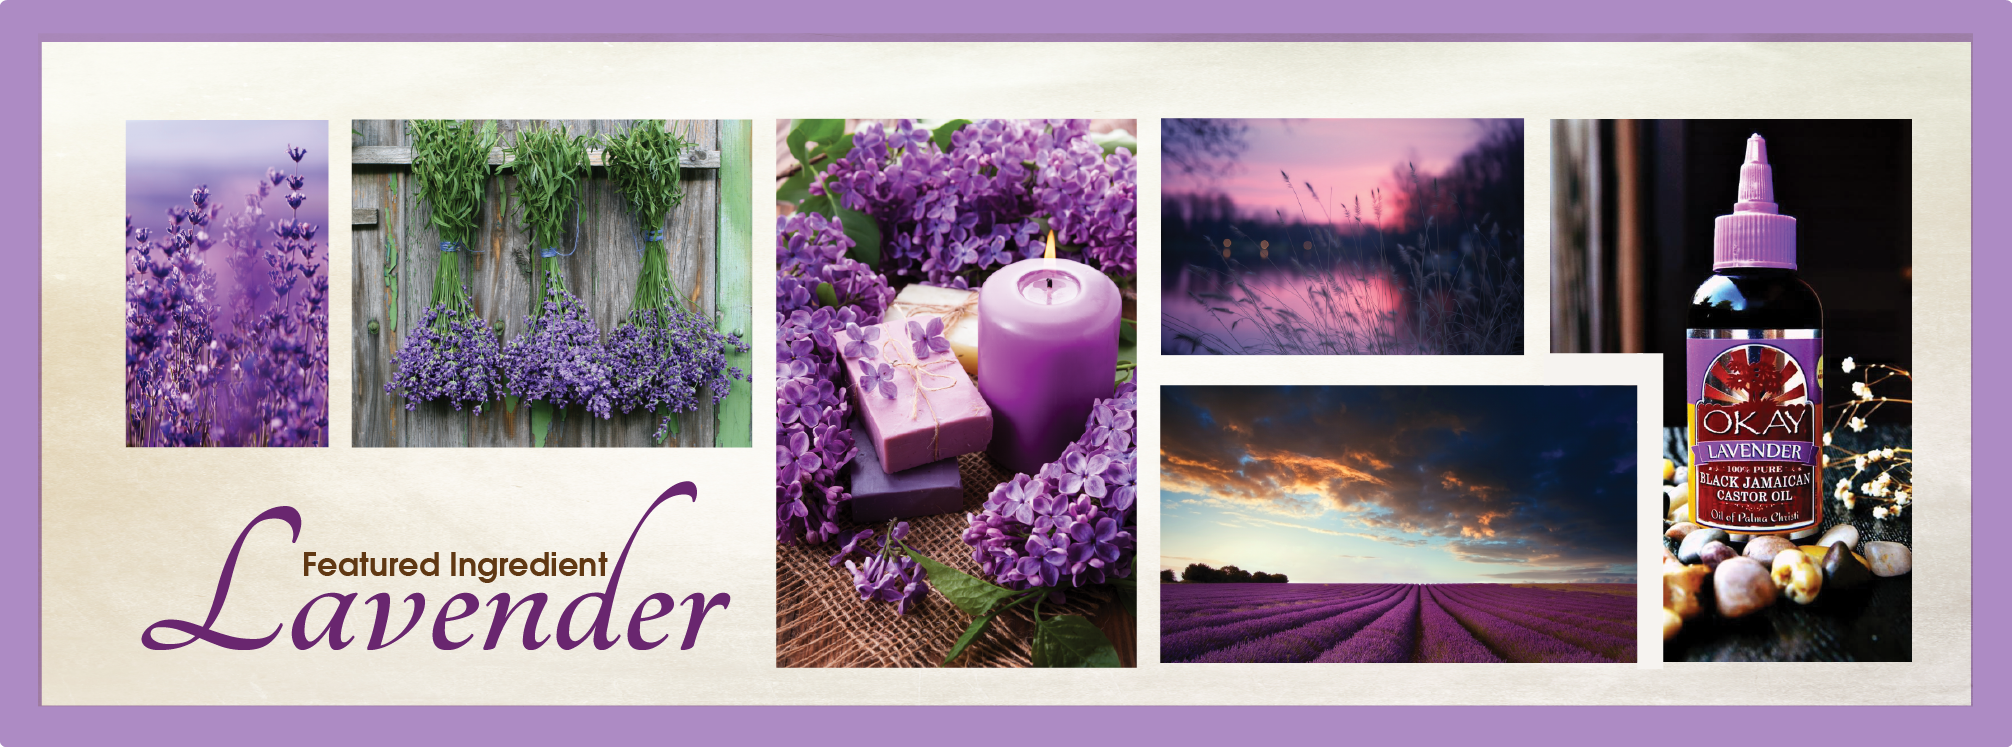 lavender-new-website-layout-summer-2016-07.png